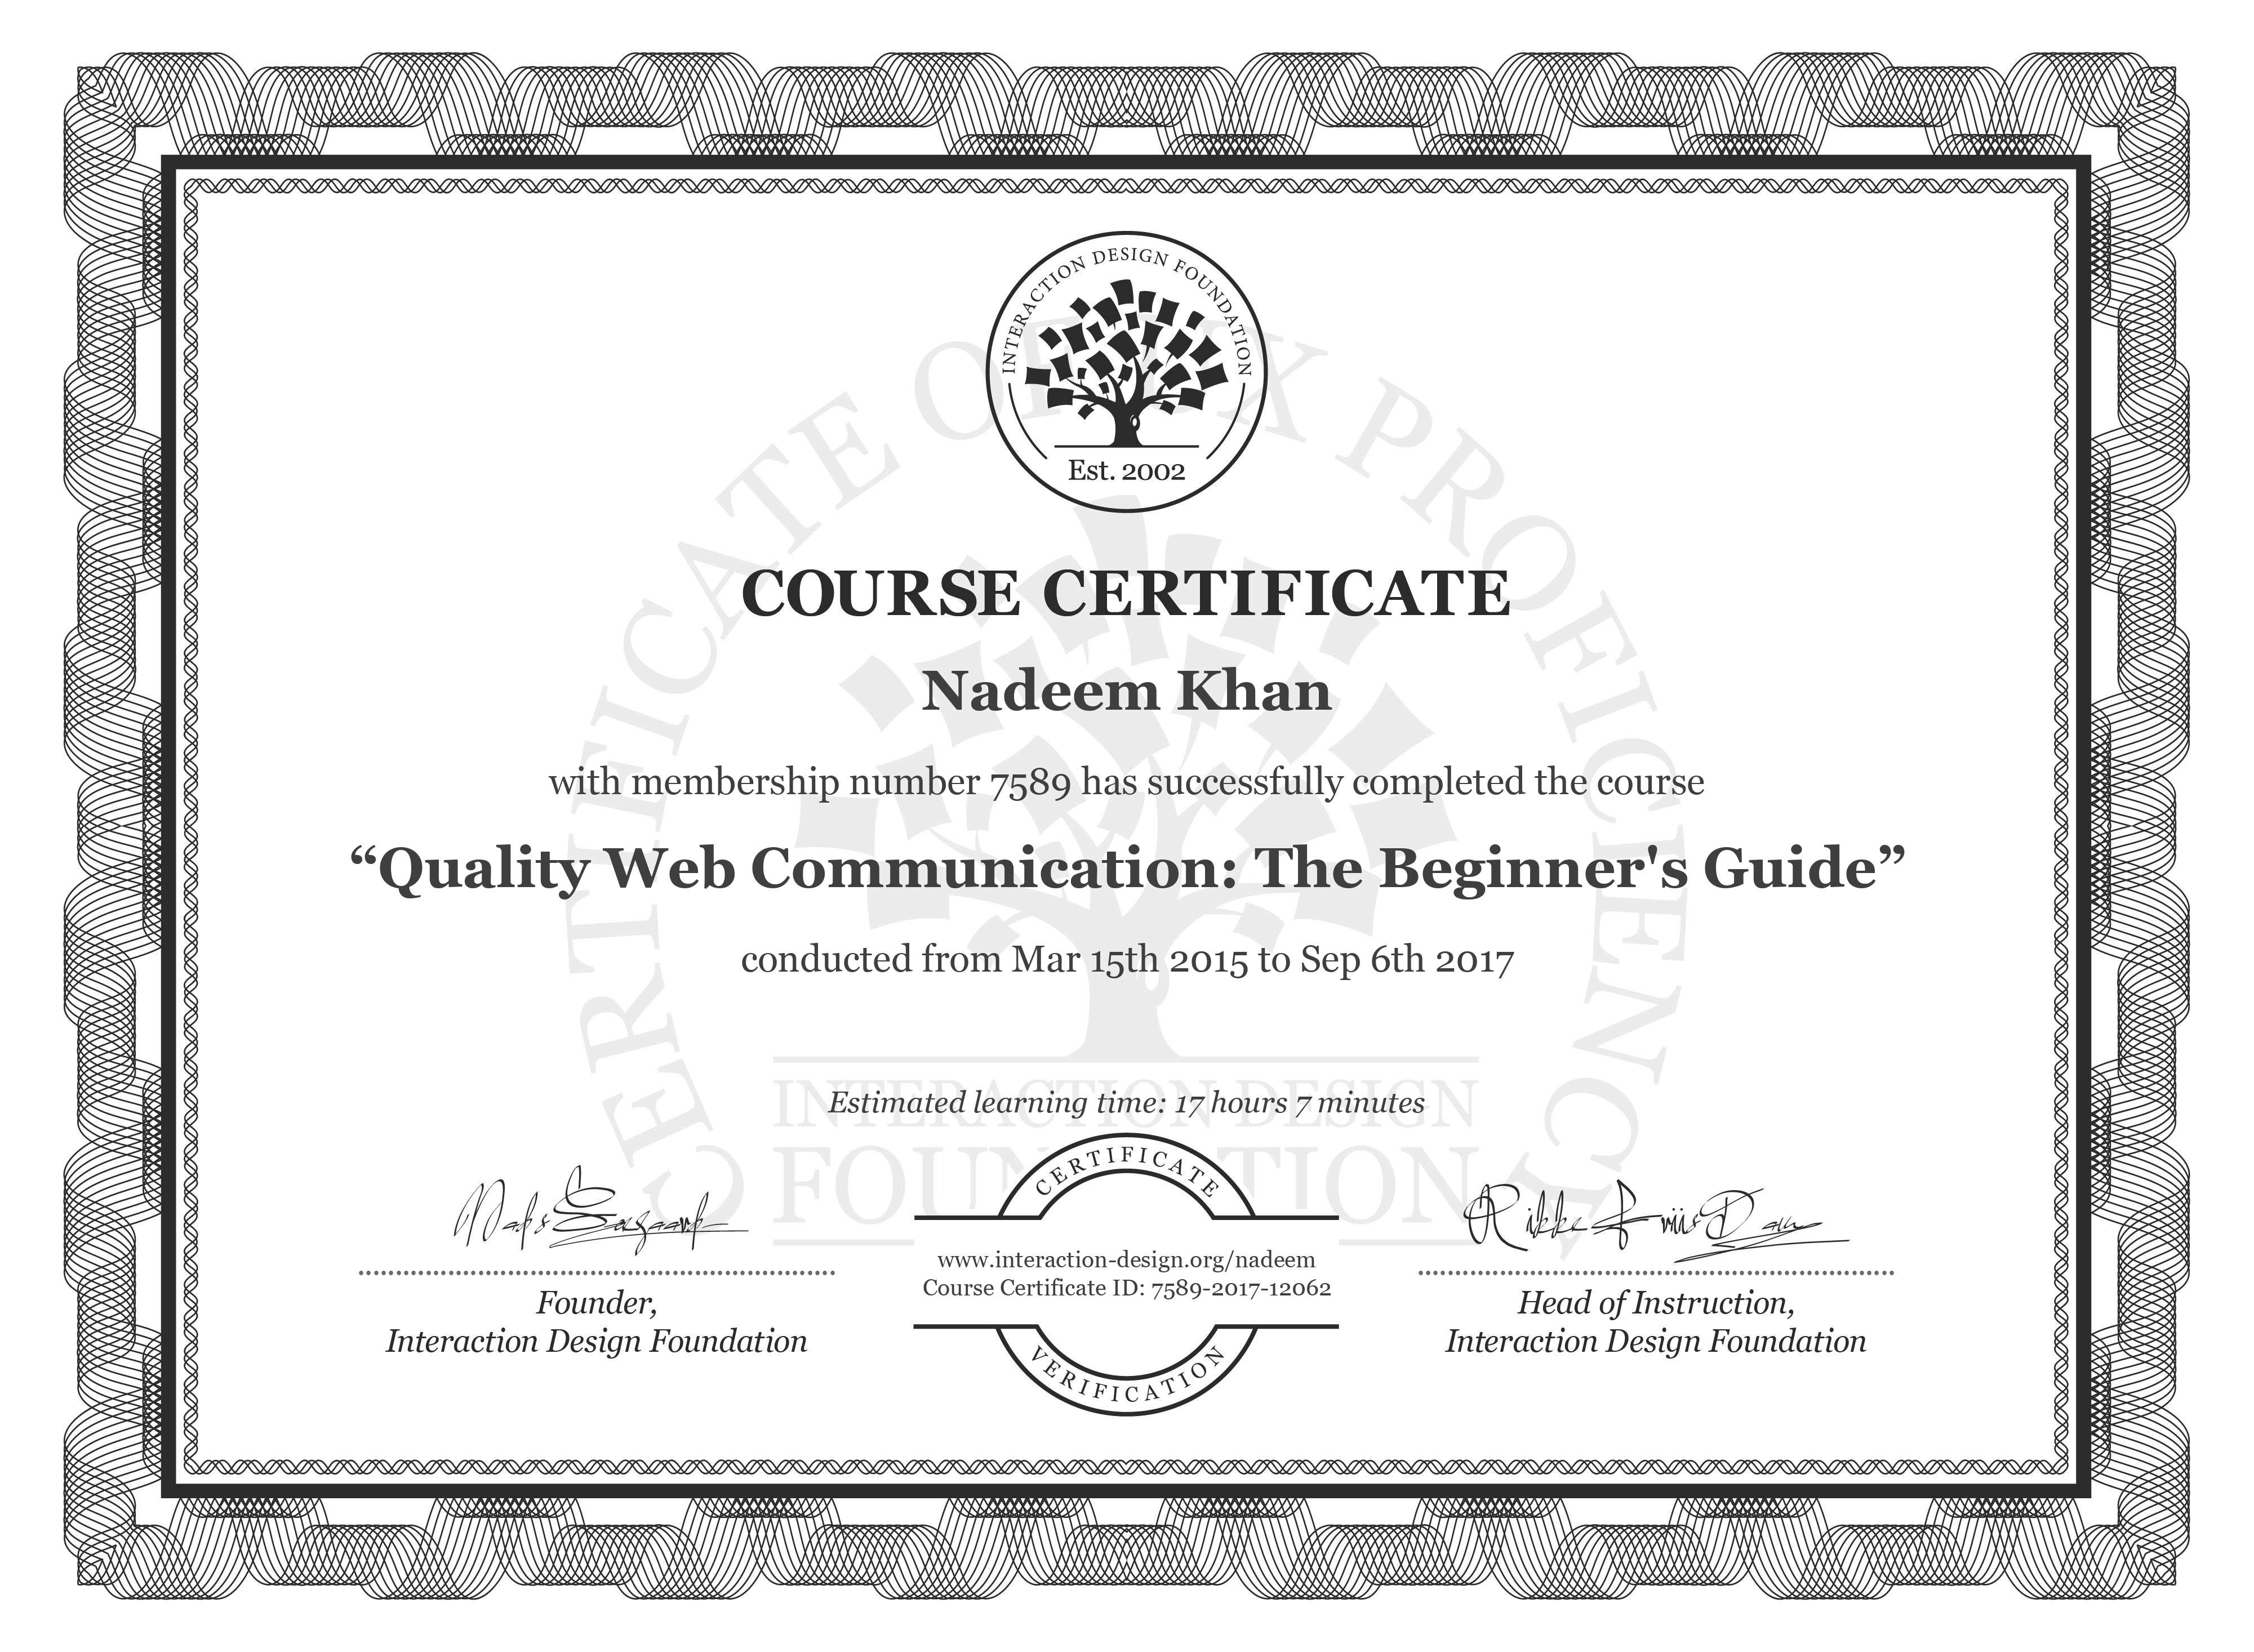 Nadeem Khan's Course Certificate: Quality Web Communication: The Beginner's Guide